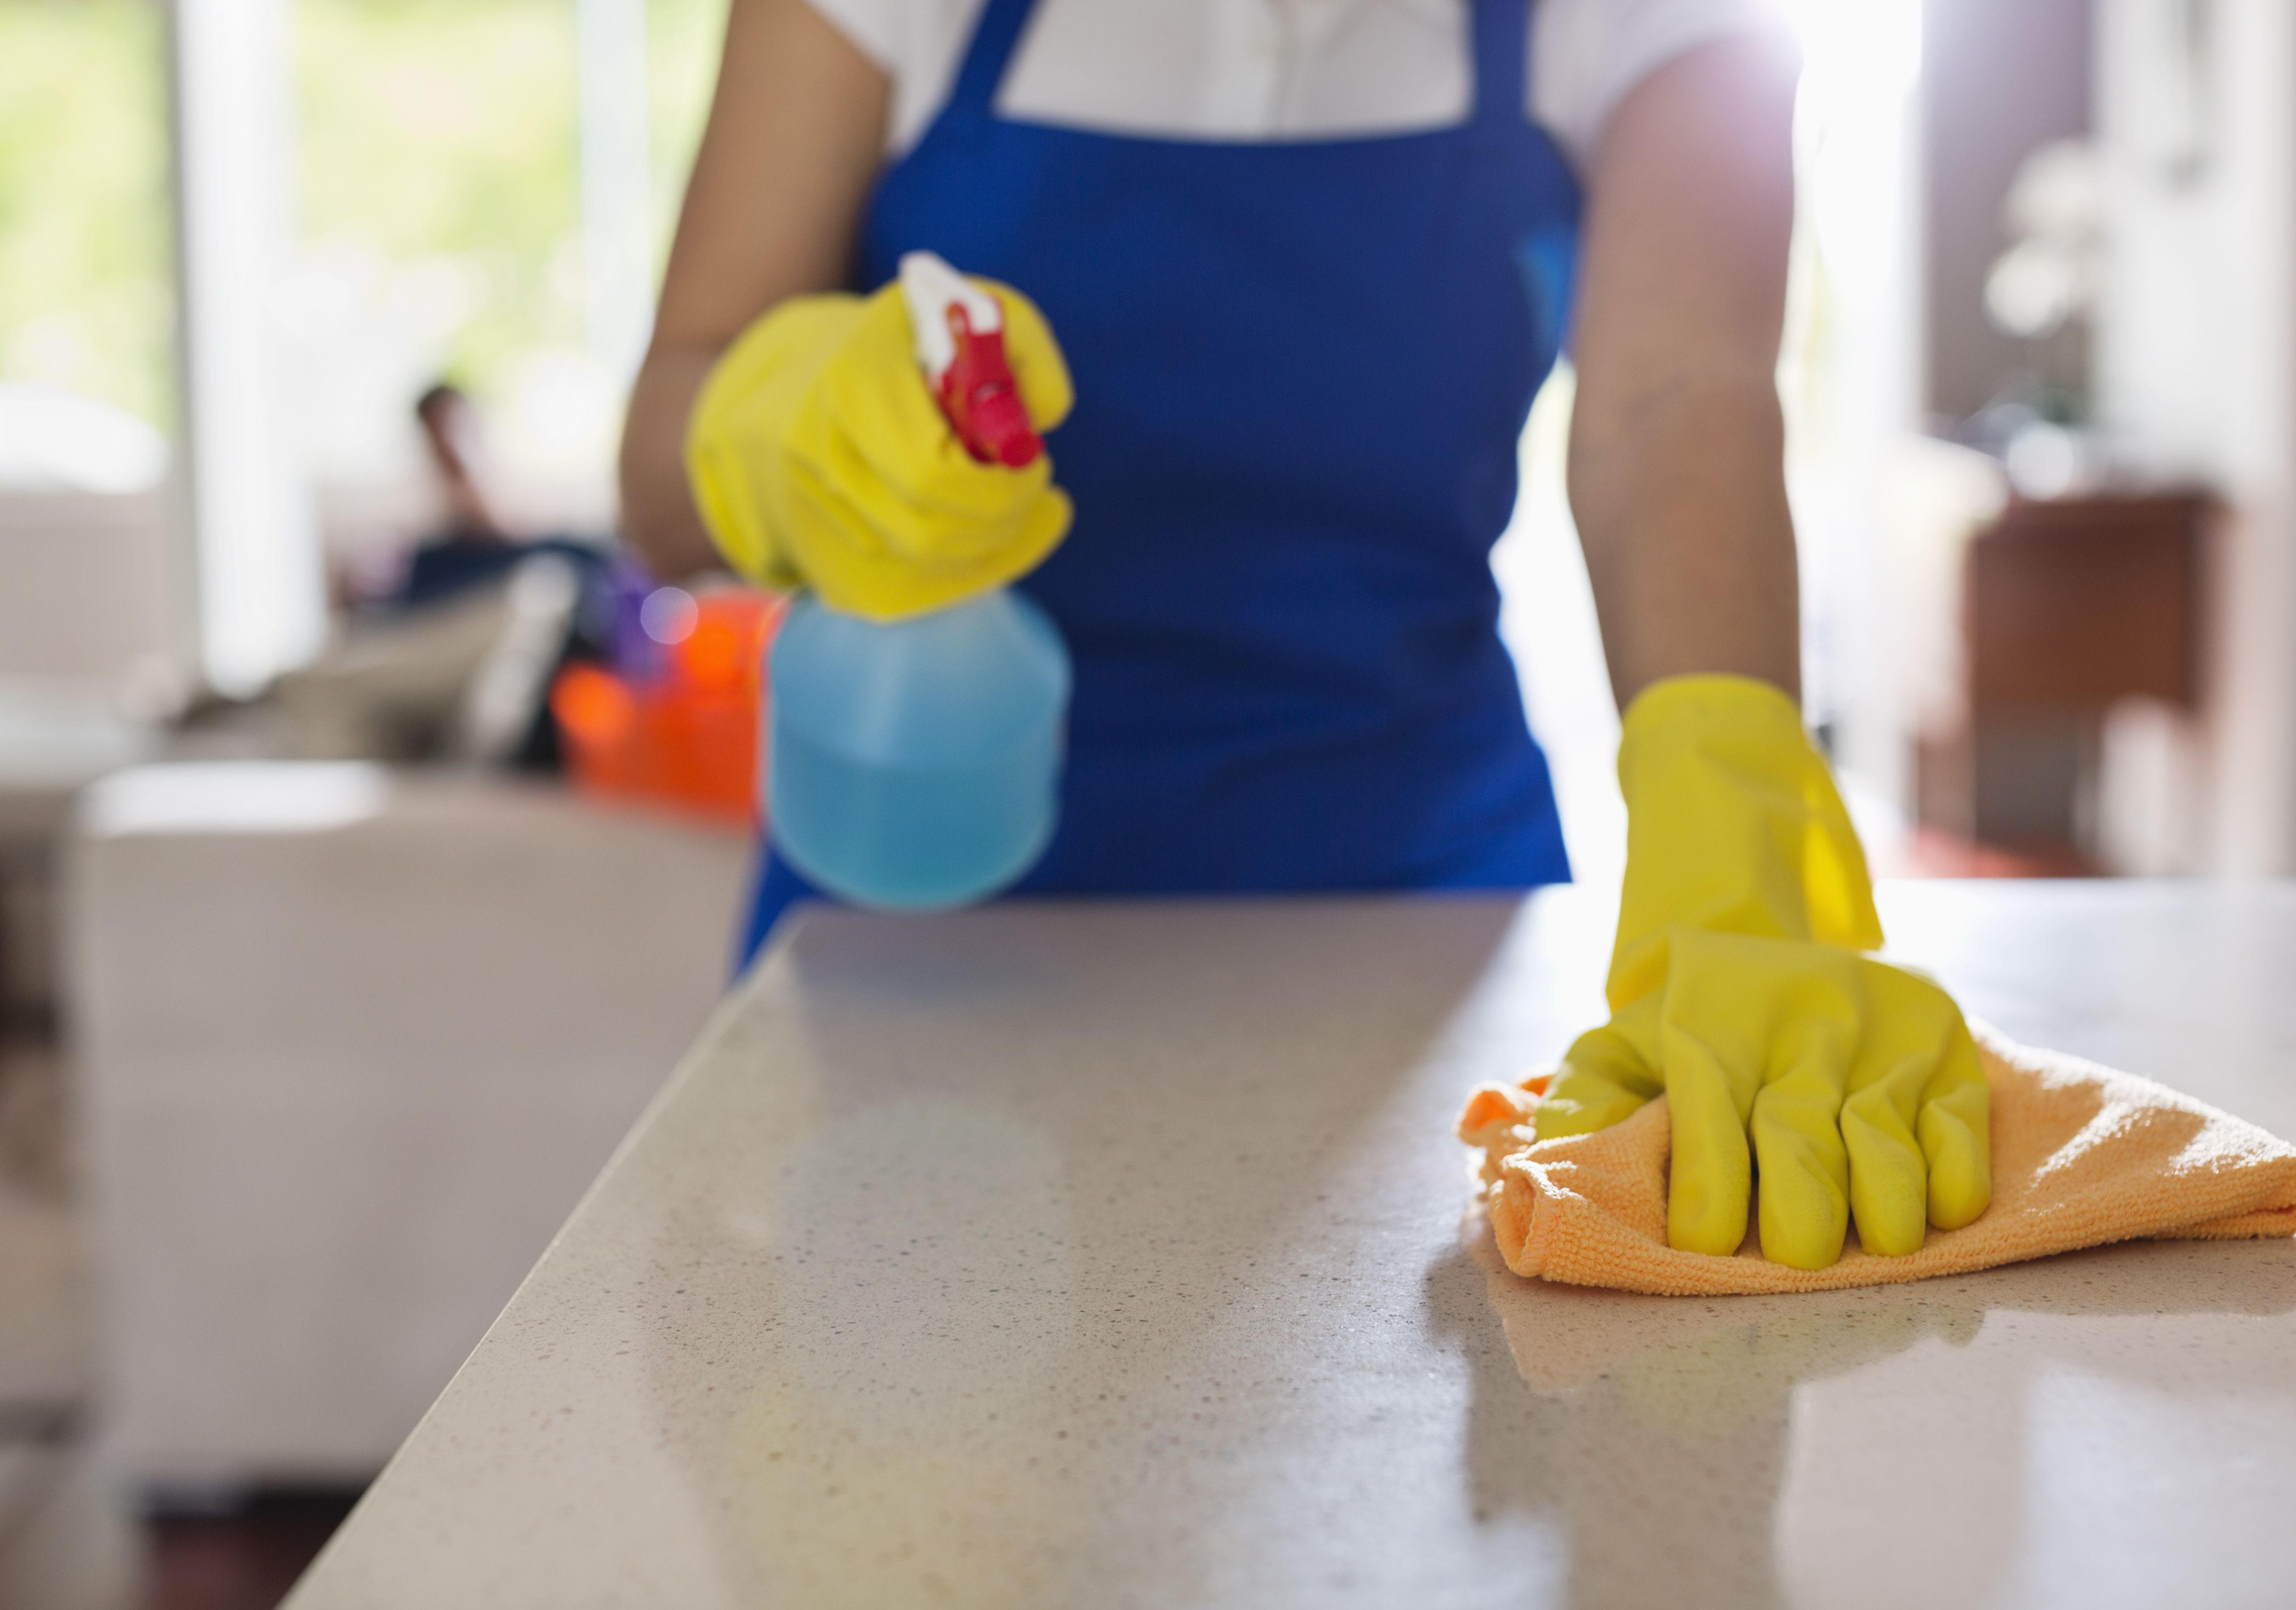 Close-up of woman's gloved hands cleaning kitchen counter